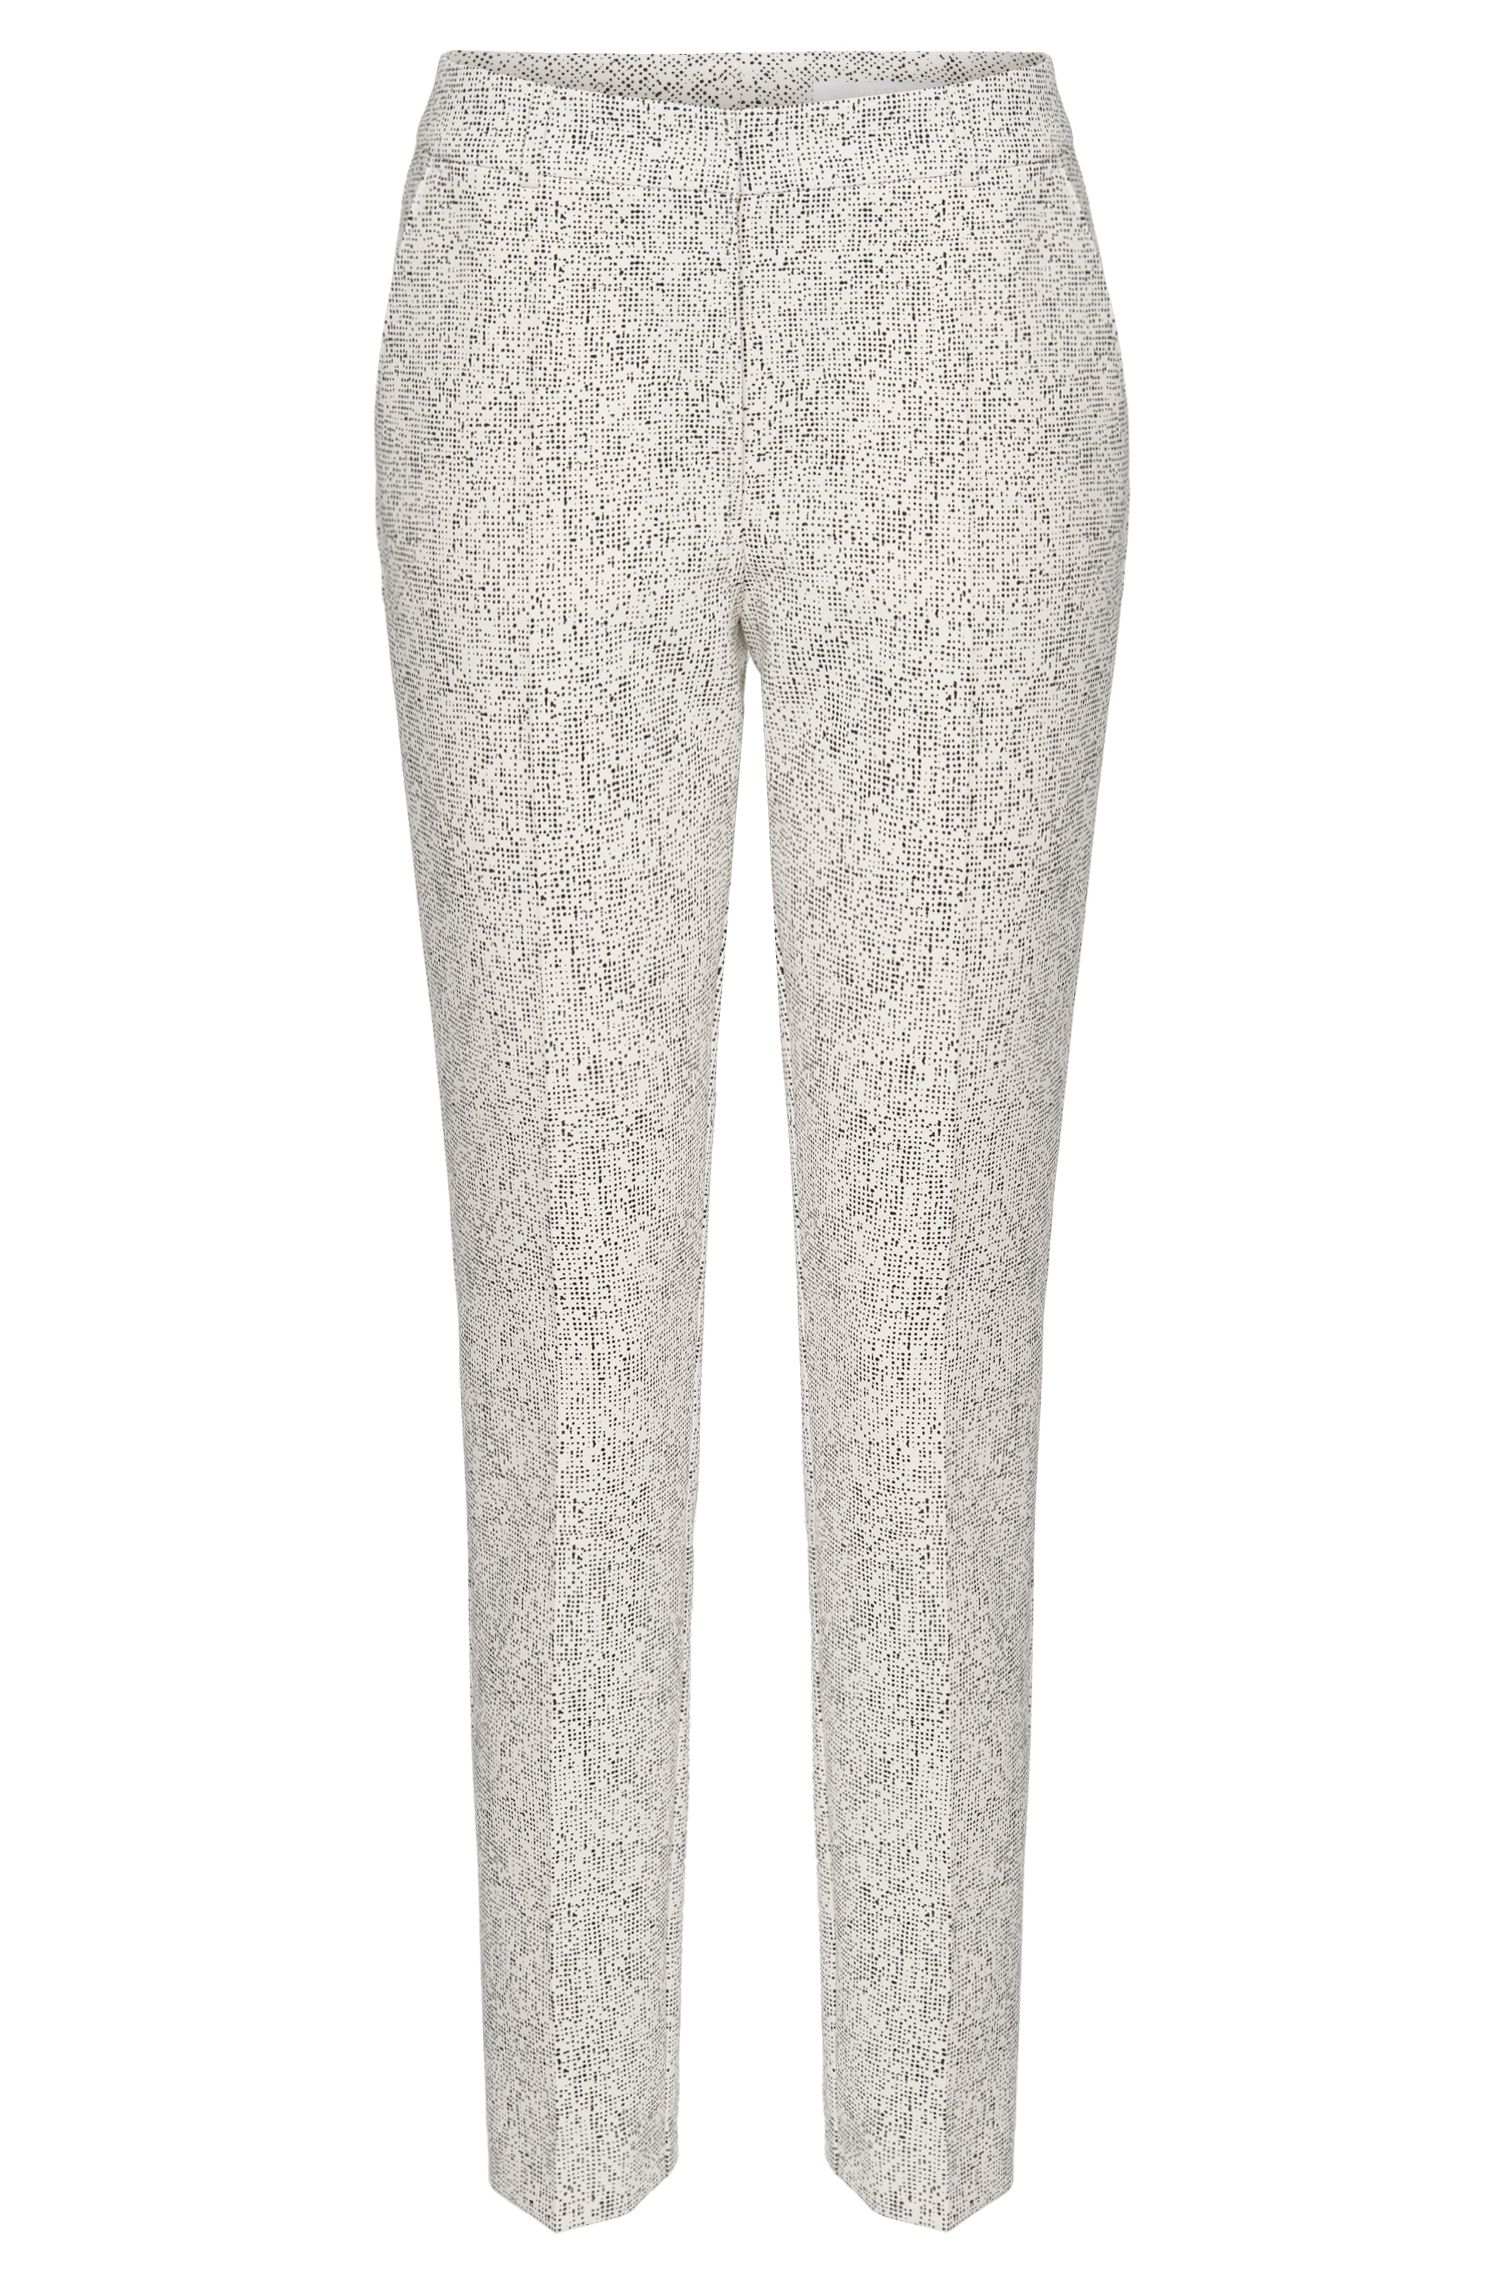 'Acnes' | Stretch Dot Print Trousers